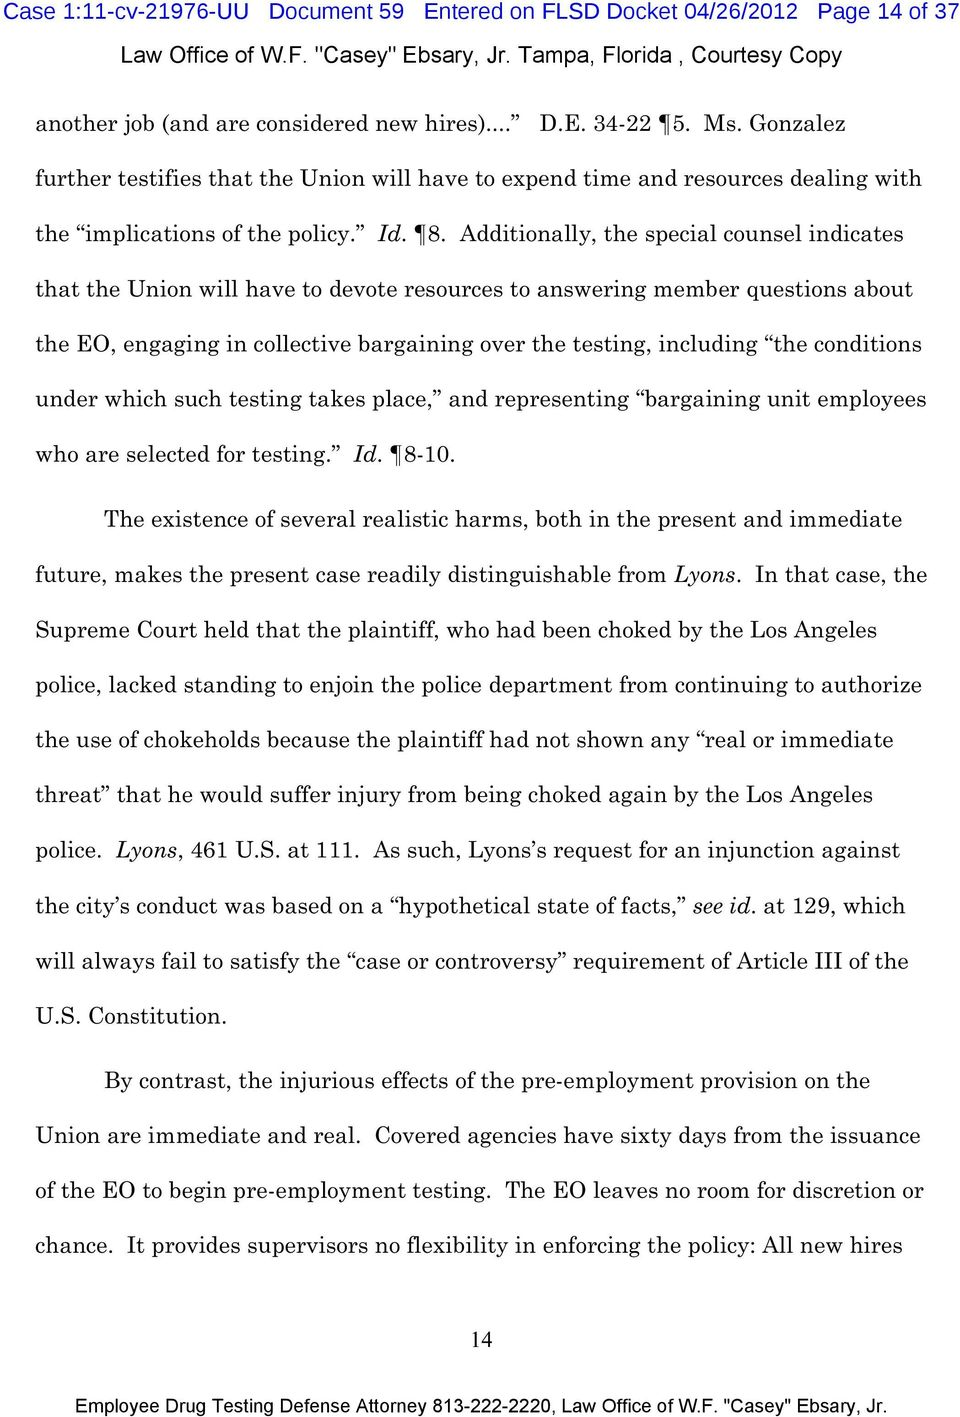 Additionally, the special counsel indicates that the Union will have to devote resources to answering member questions about the EO, engaging in collective bargaining over the testing, including the